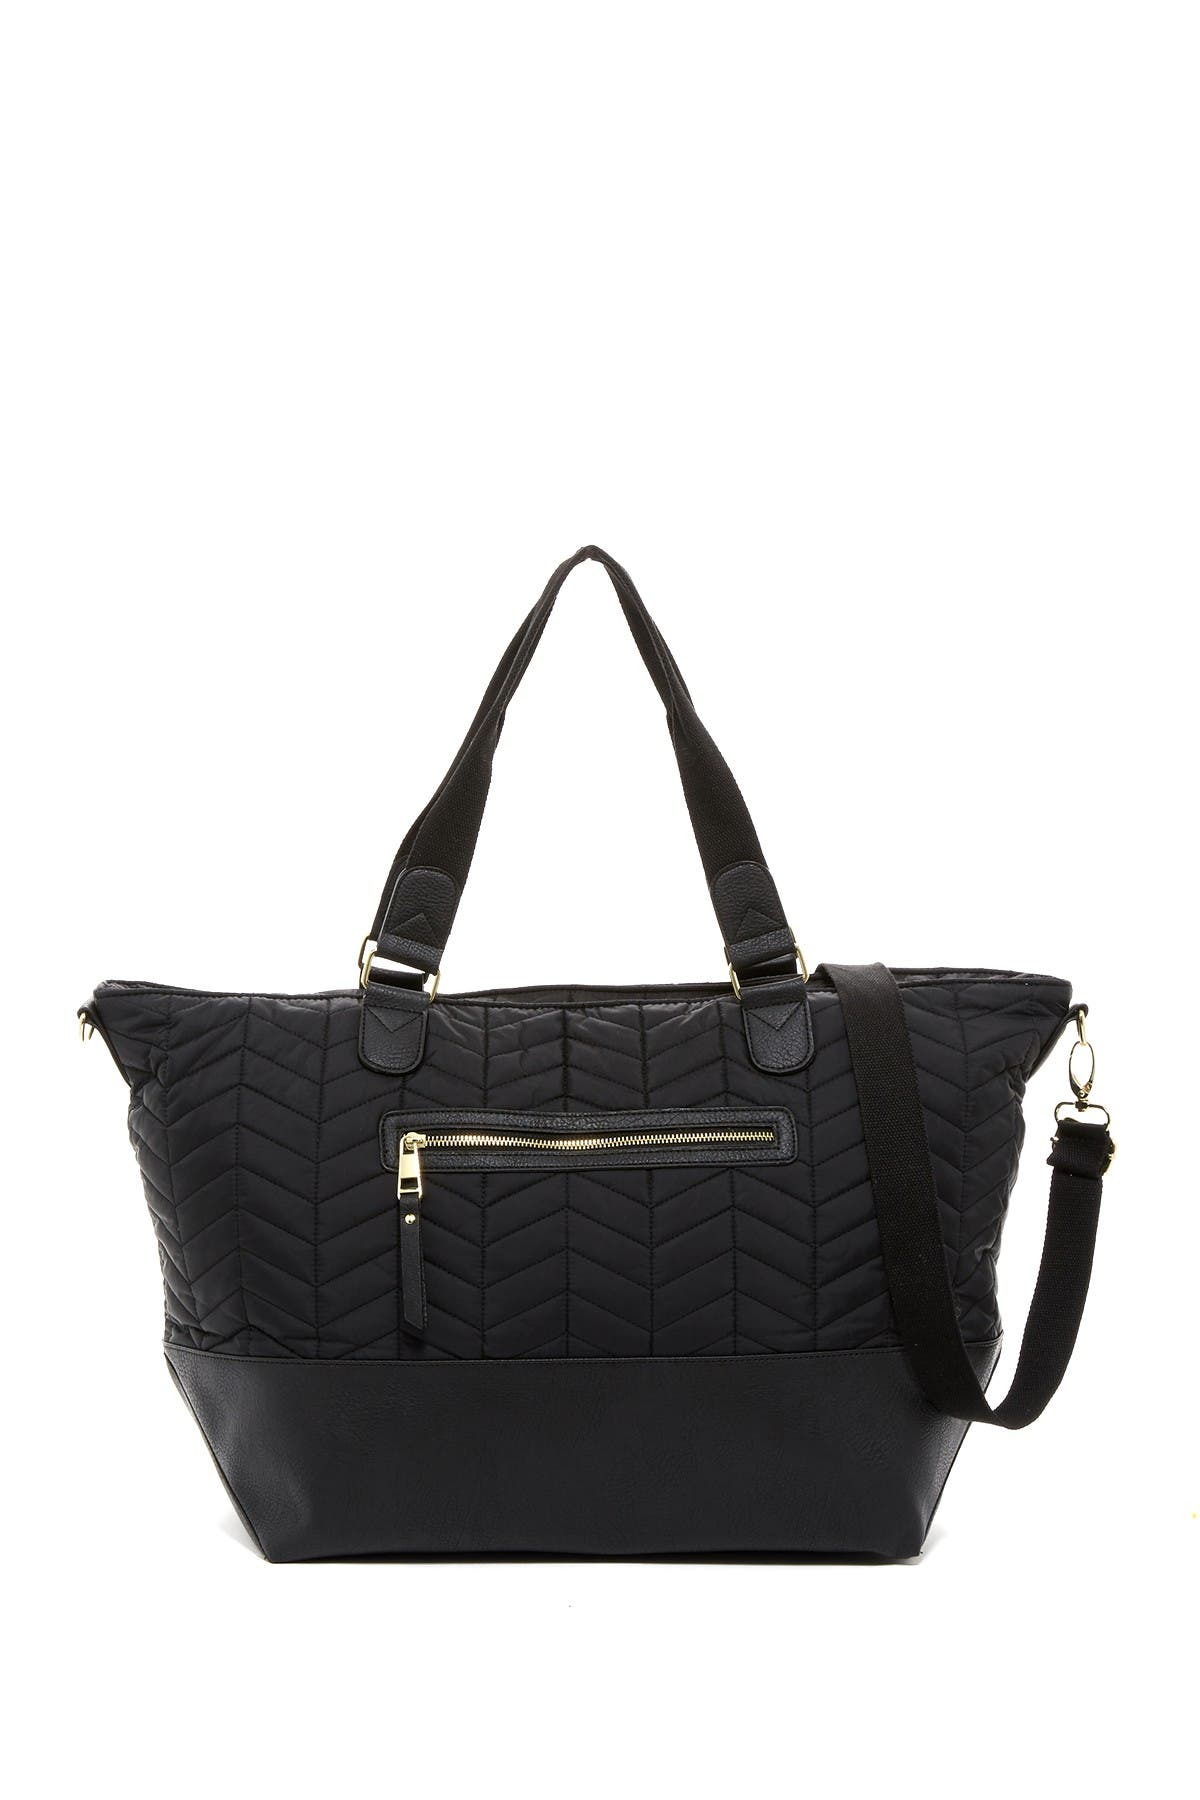 Image of Madden Girl Cori Quilted Weekend Bag